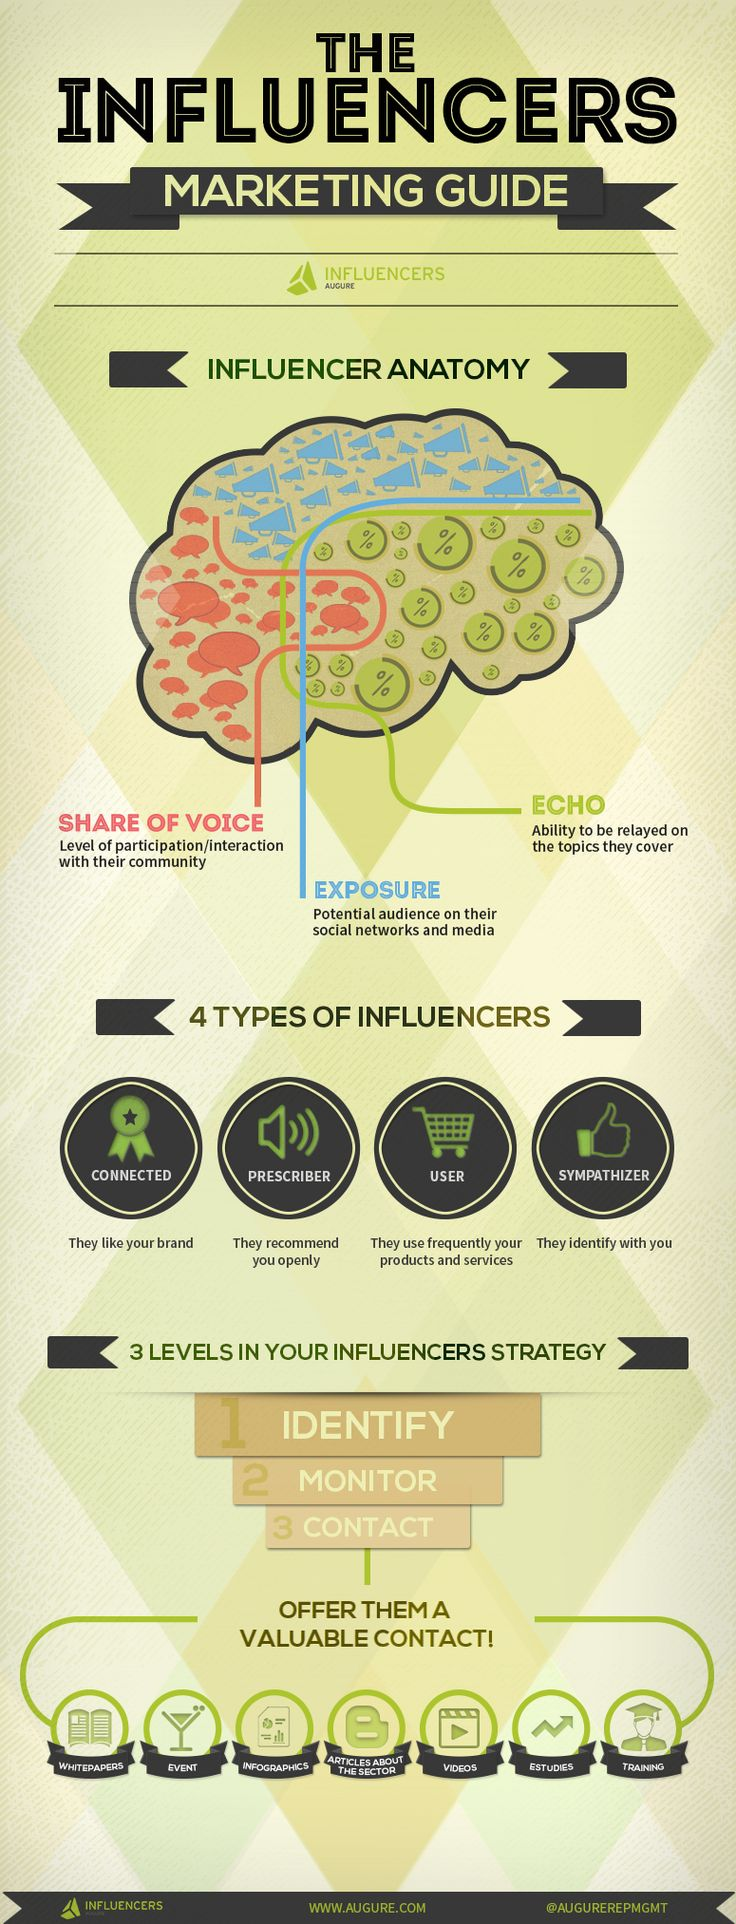 Identify, monitor, contact: 3 steps in your influencers strategy